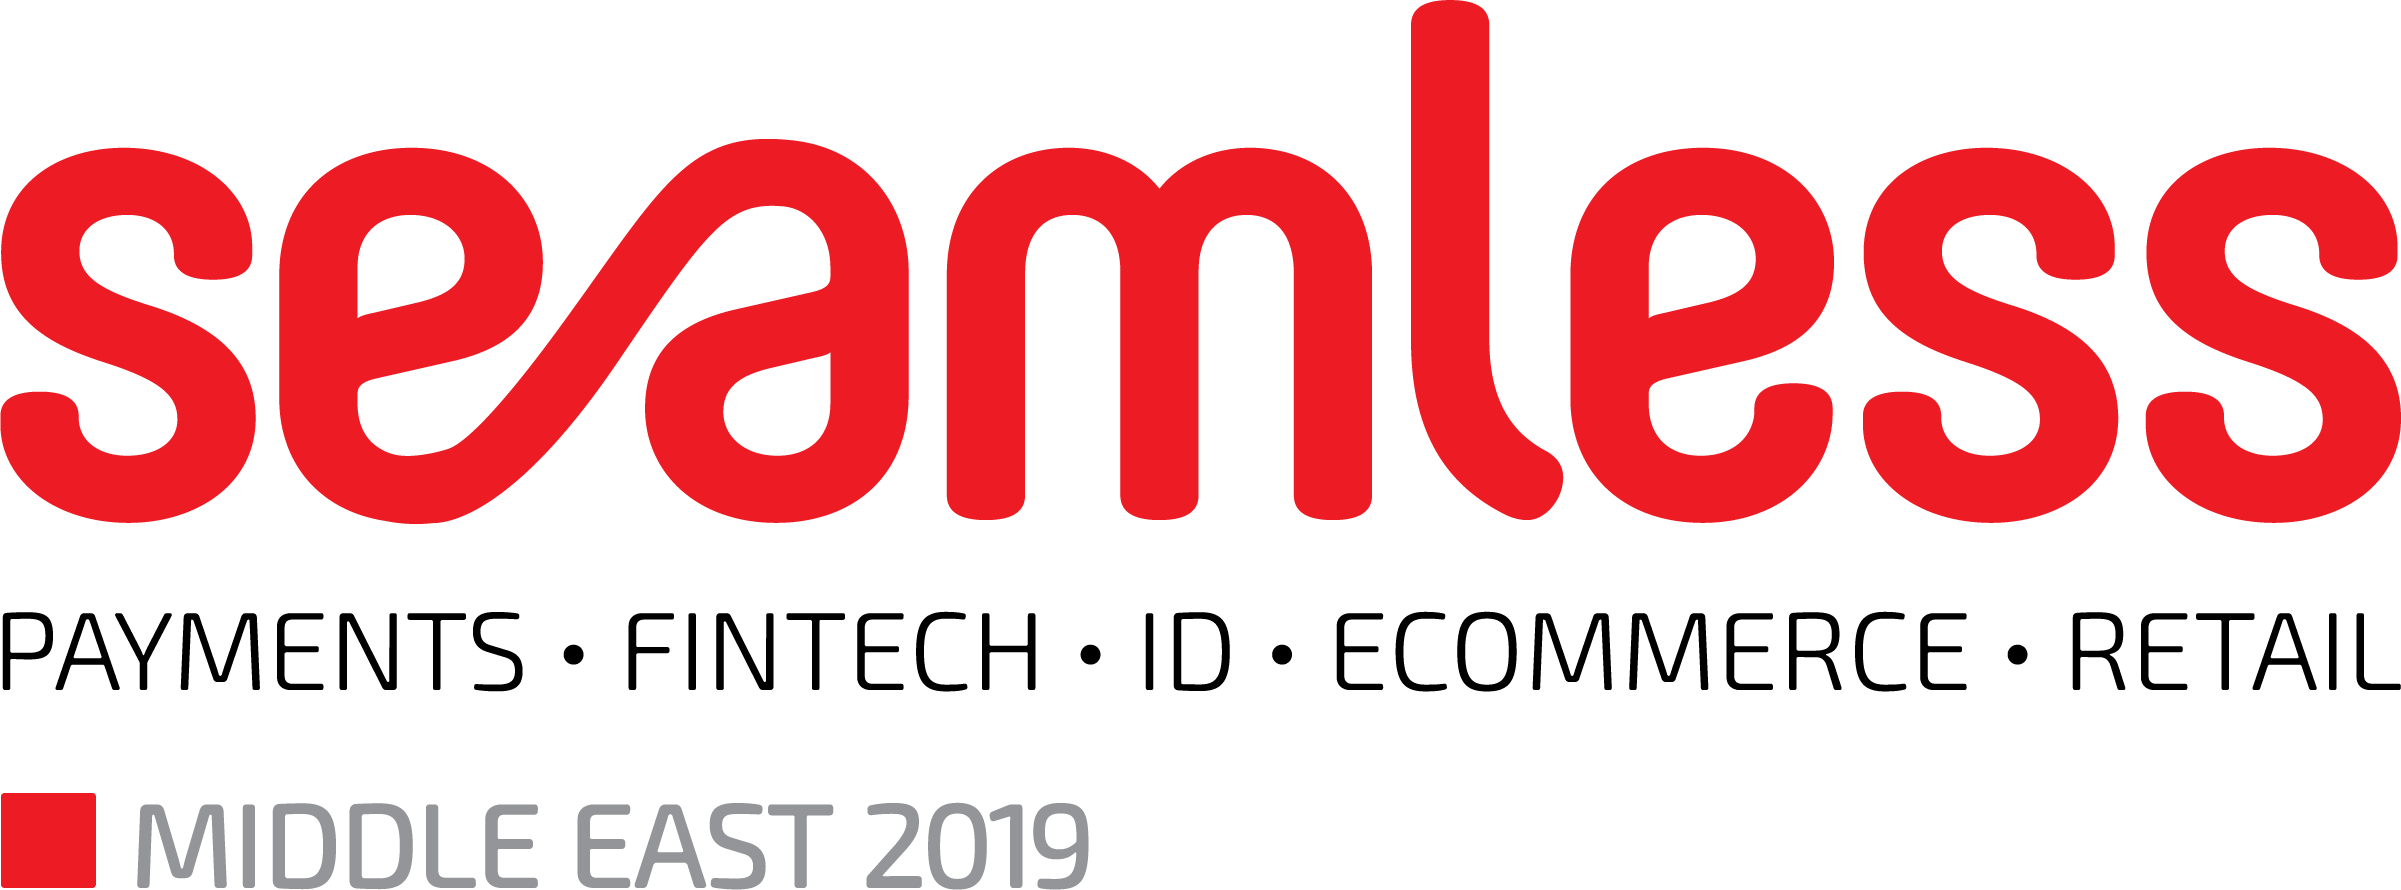 Seamless ME 2019 organized by Terrapinn